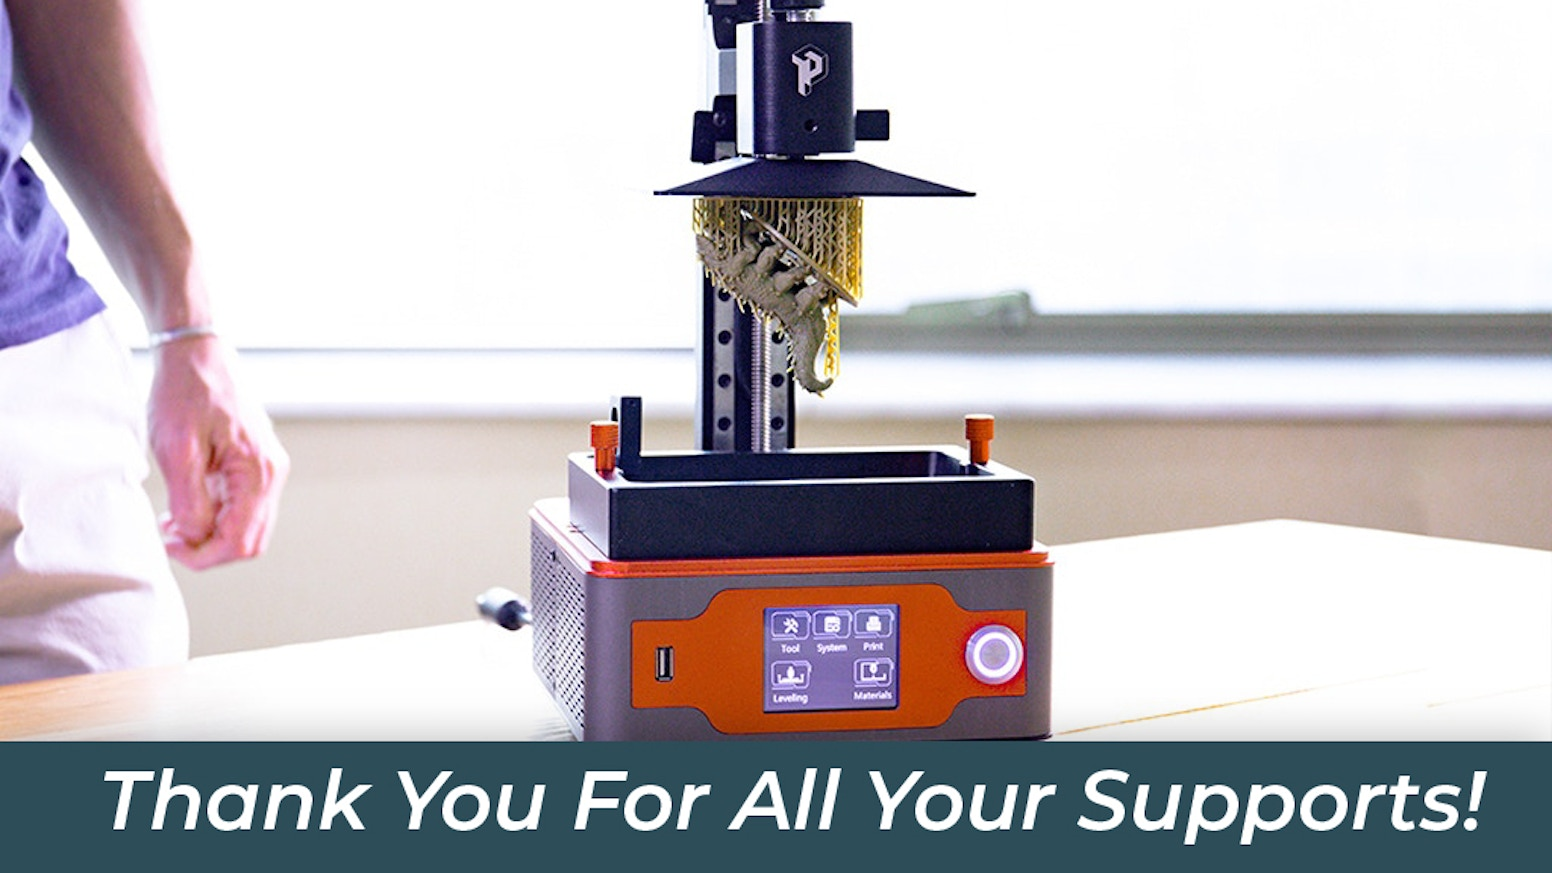 Paladin, The Most Affordable All-Metal SLA 3D Printer by